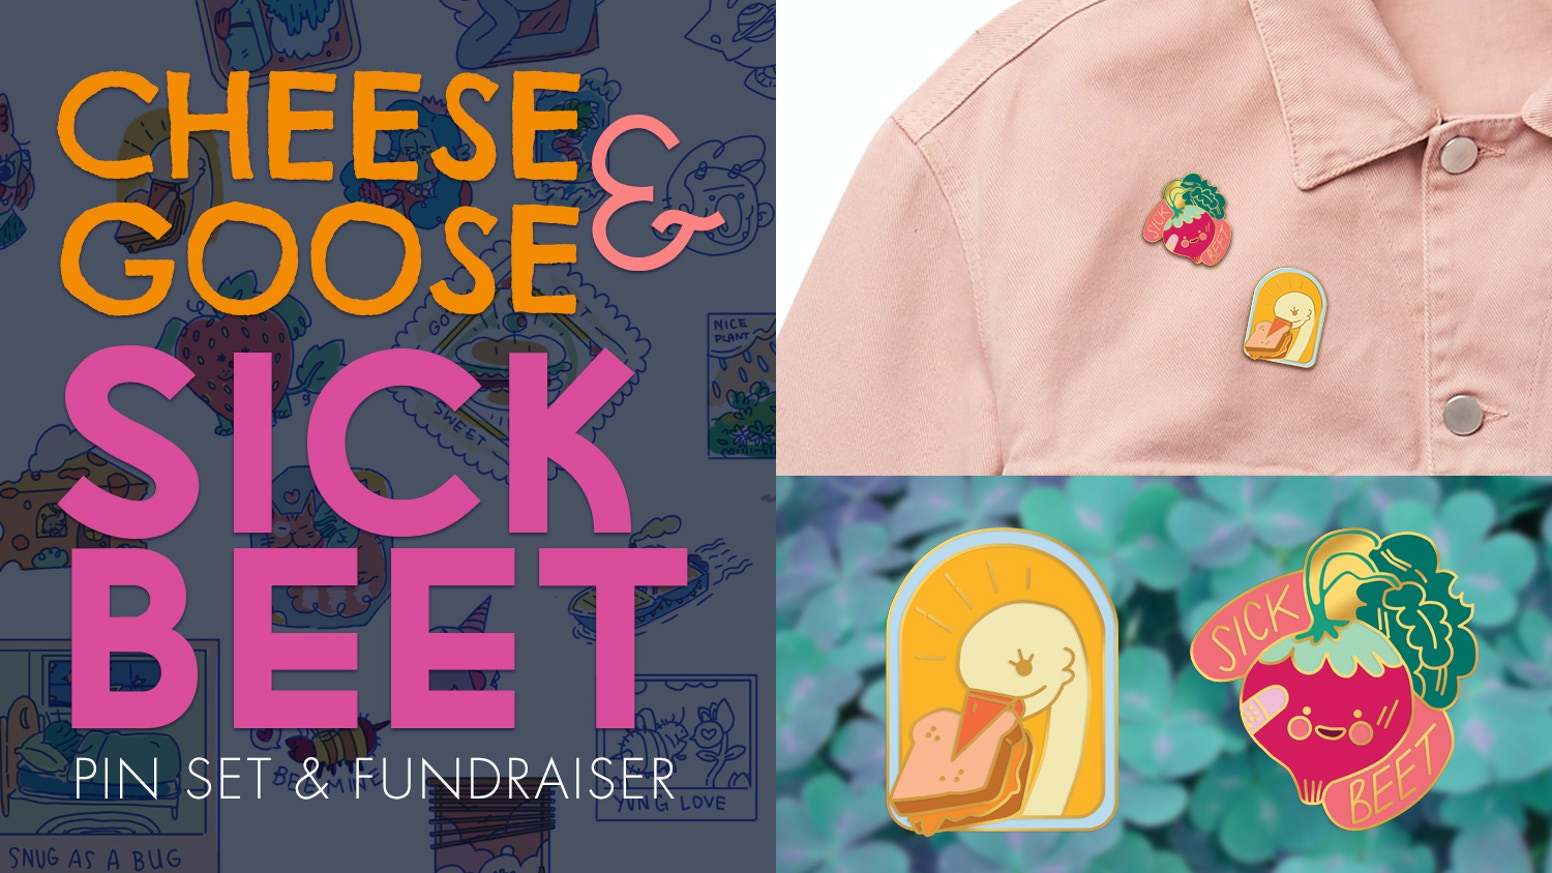 High quality pins for geese who love cheese, and beets who like to DJ.